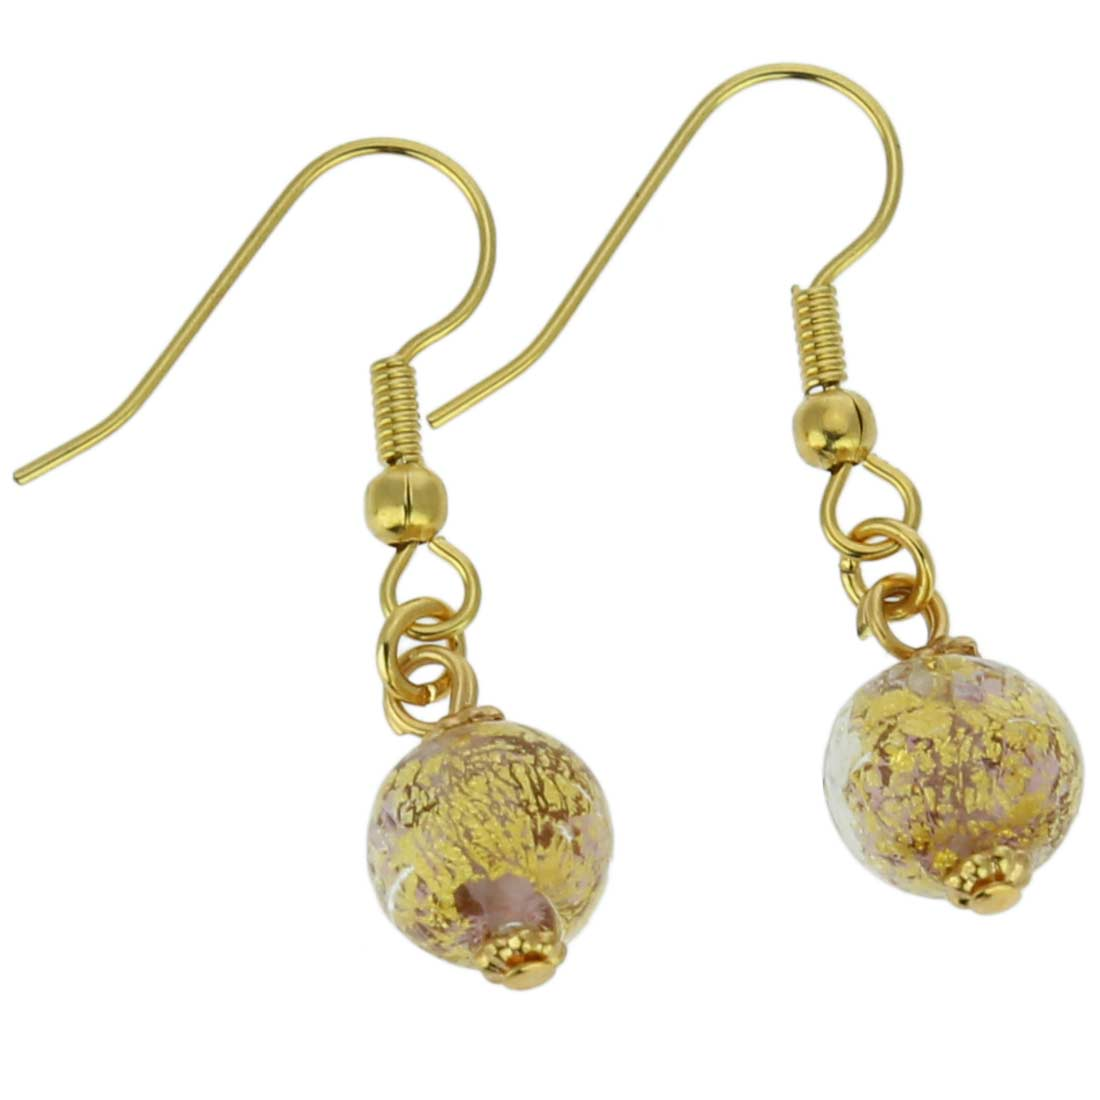 Golden Glow Earrings - Amethyst